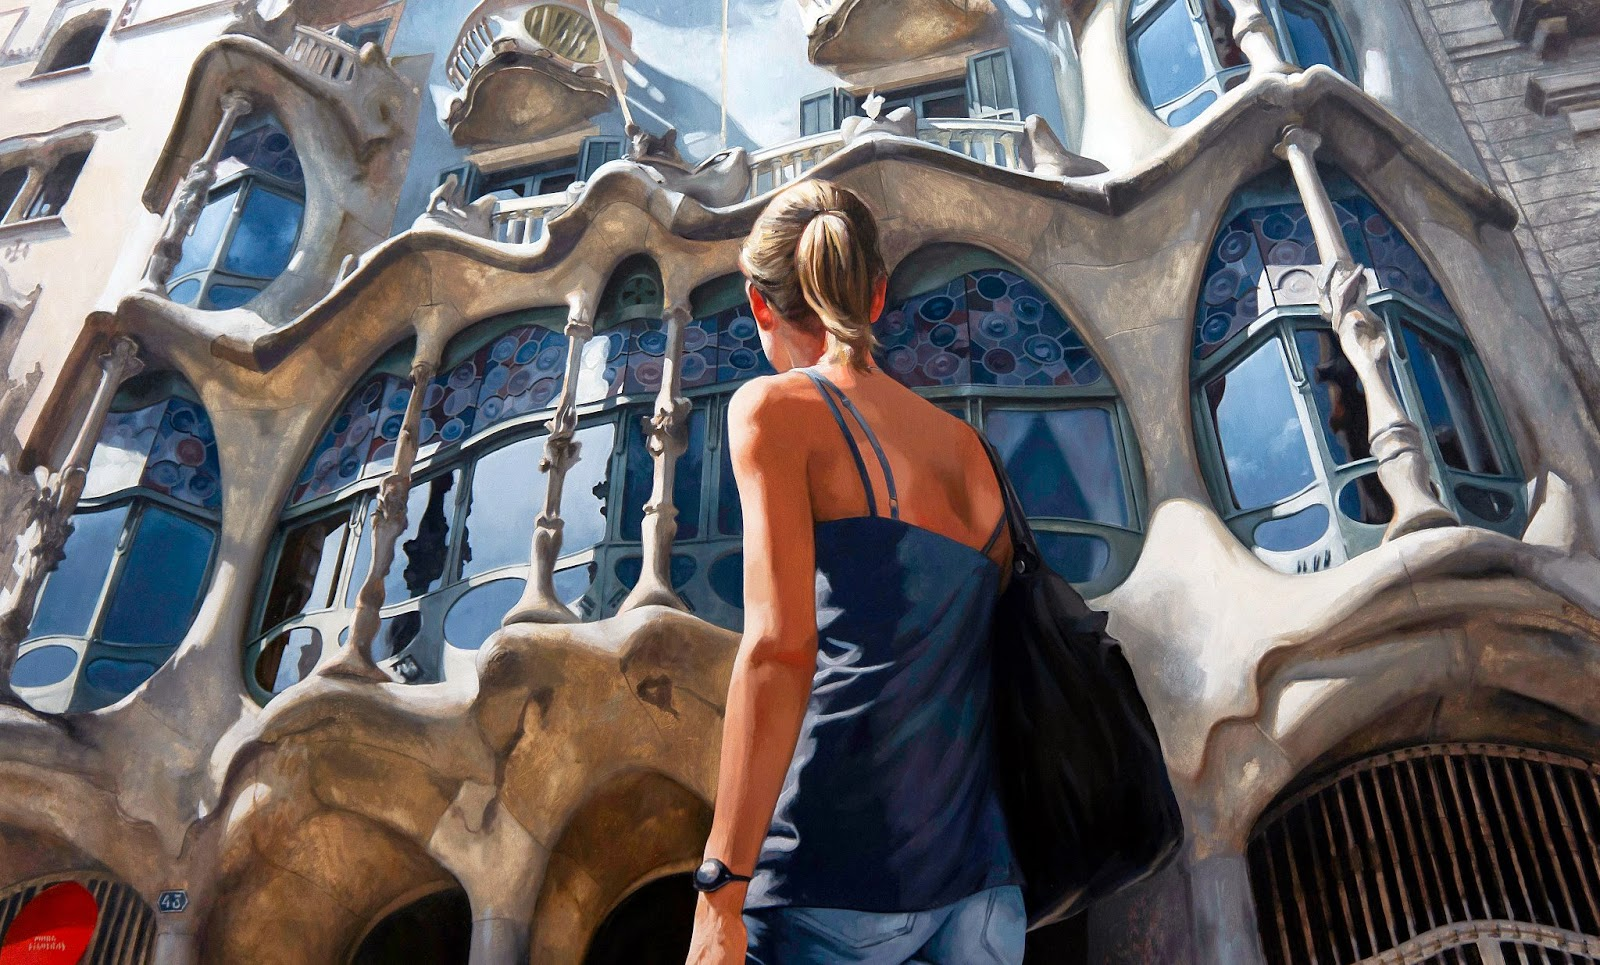 Hyper Realistic Girls Figure Painting By Marc Figueras (35)